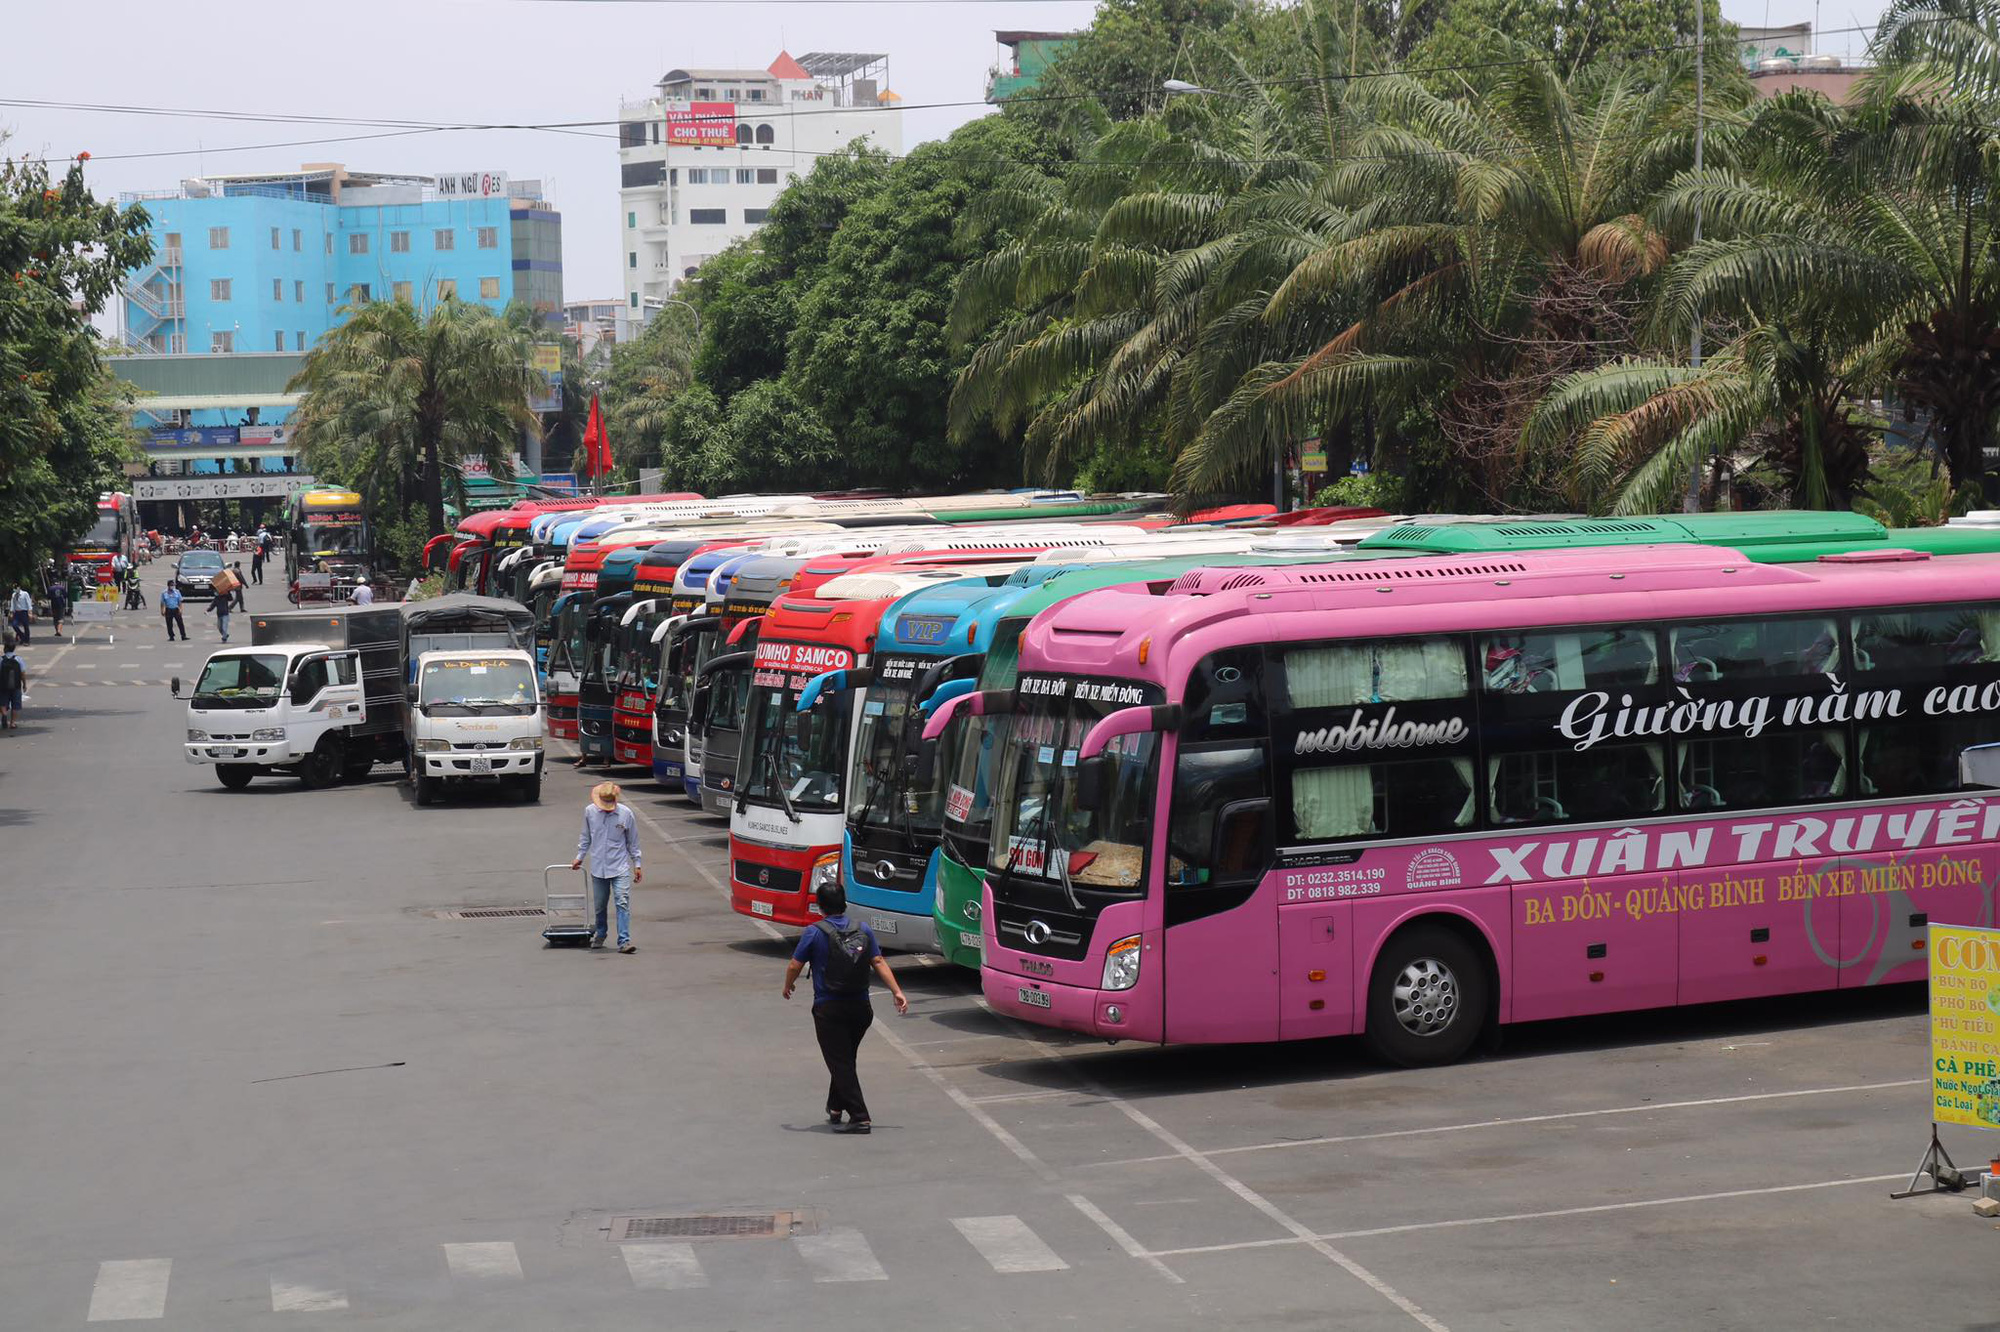 Long-haul buses come back on stream in Vietnam